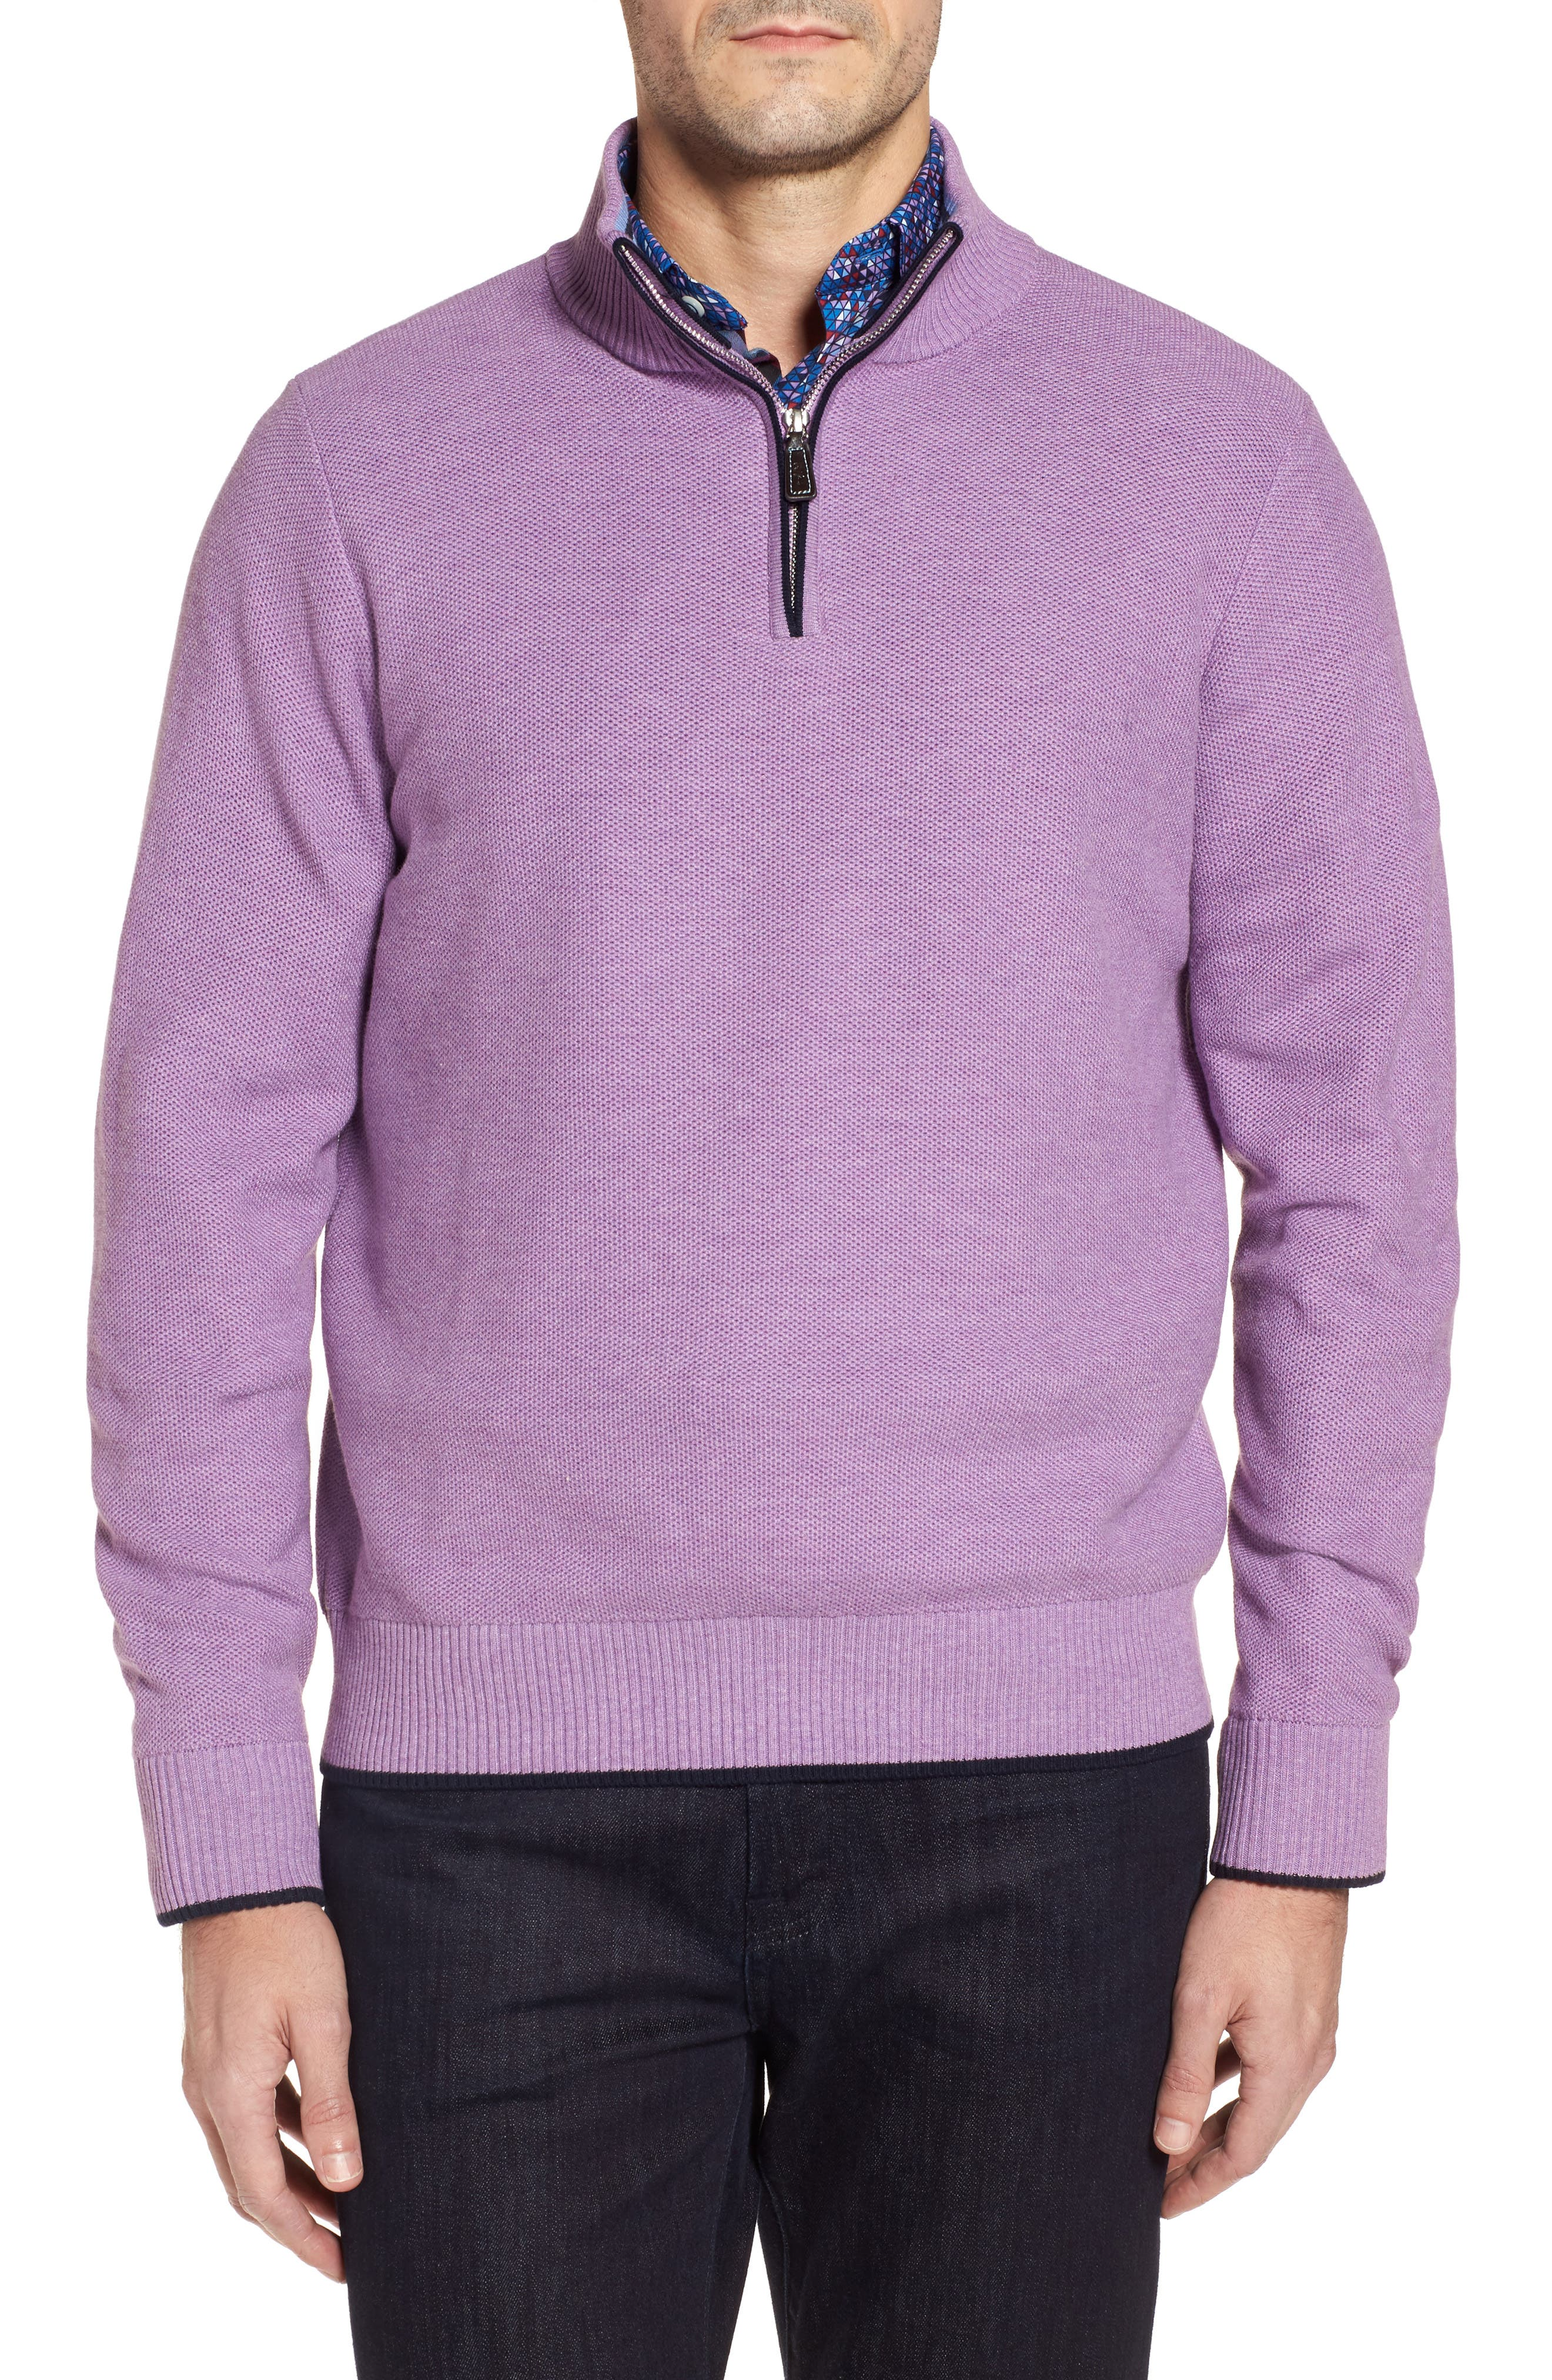 TailorByrd Ossun Tipped Quarter Zip Sweater